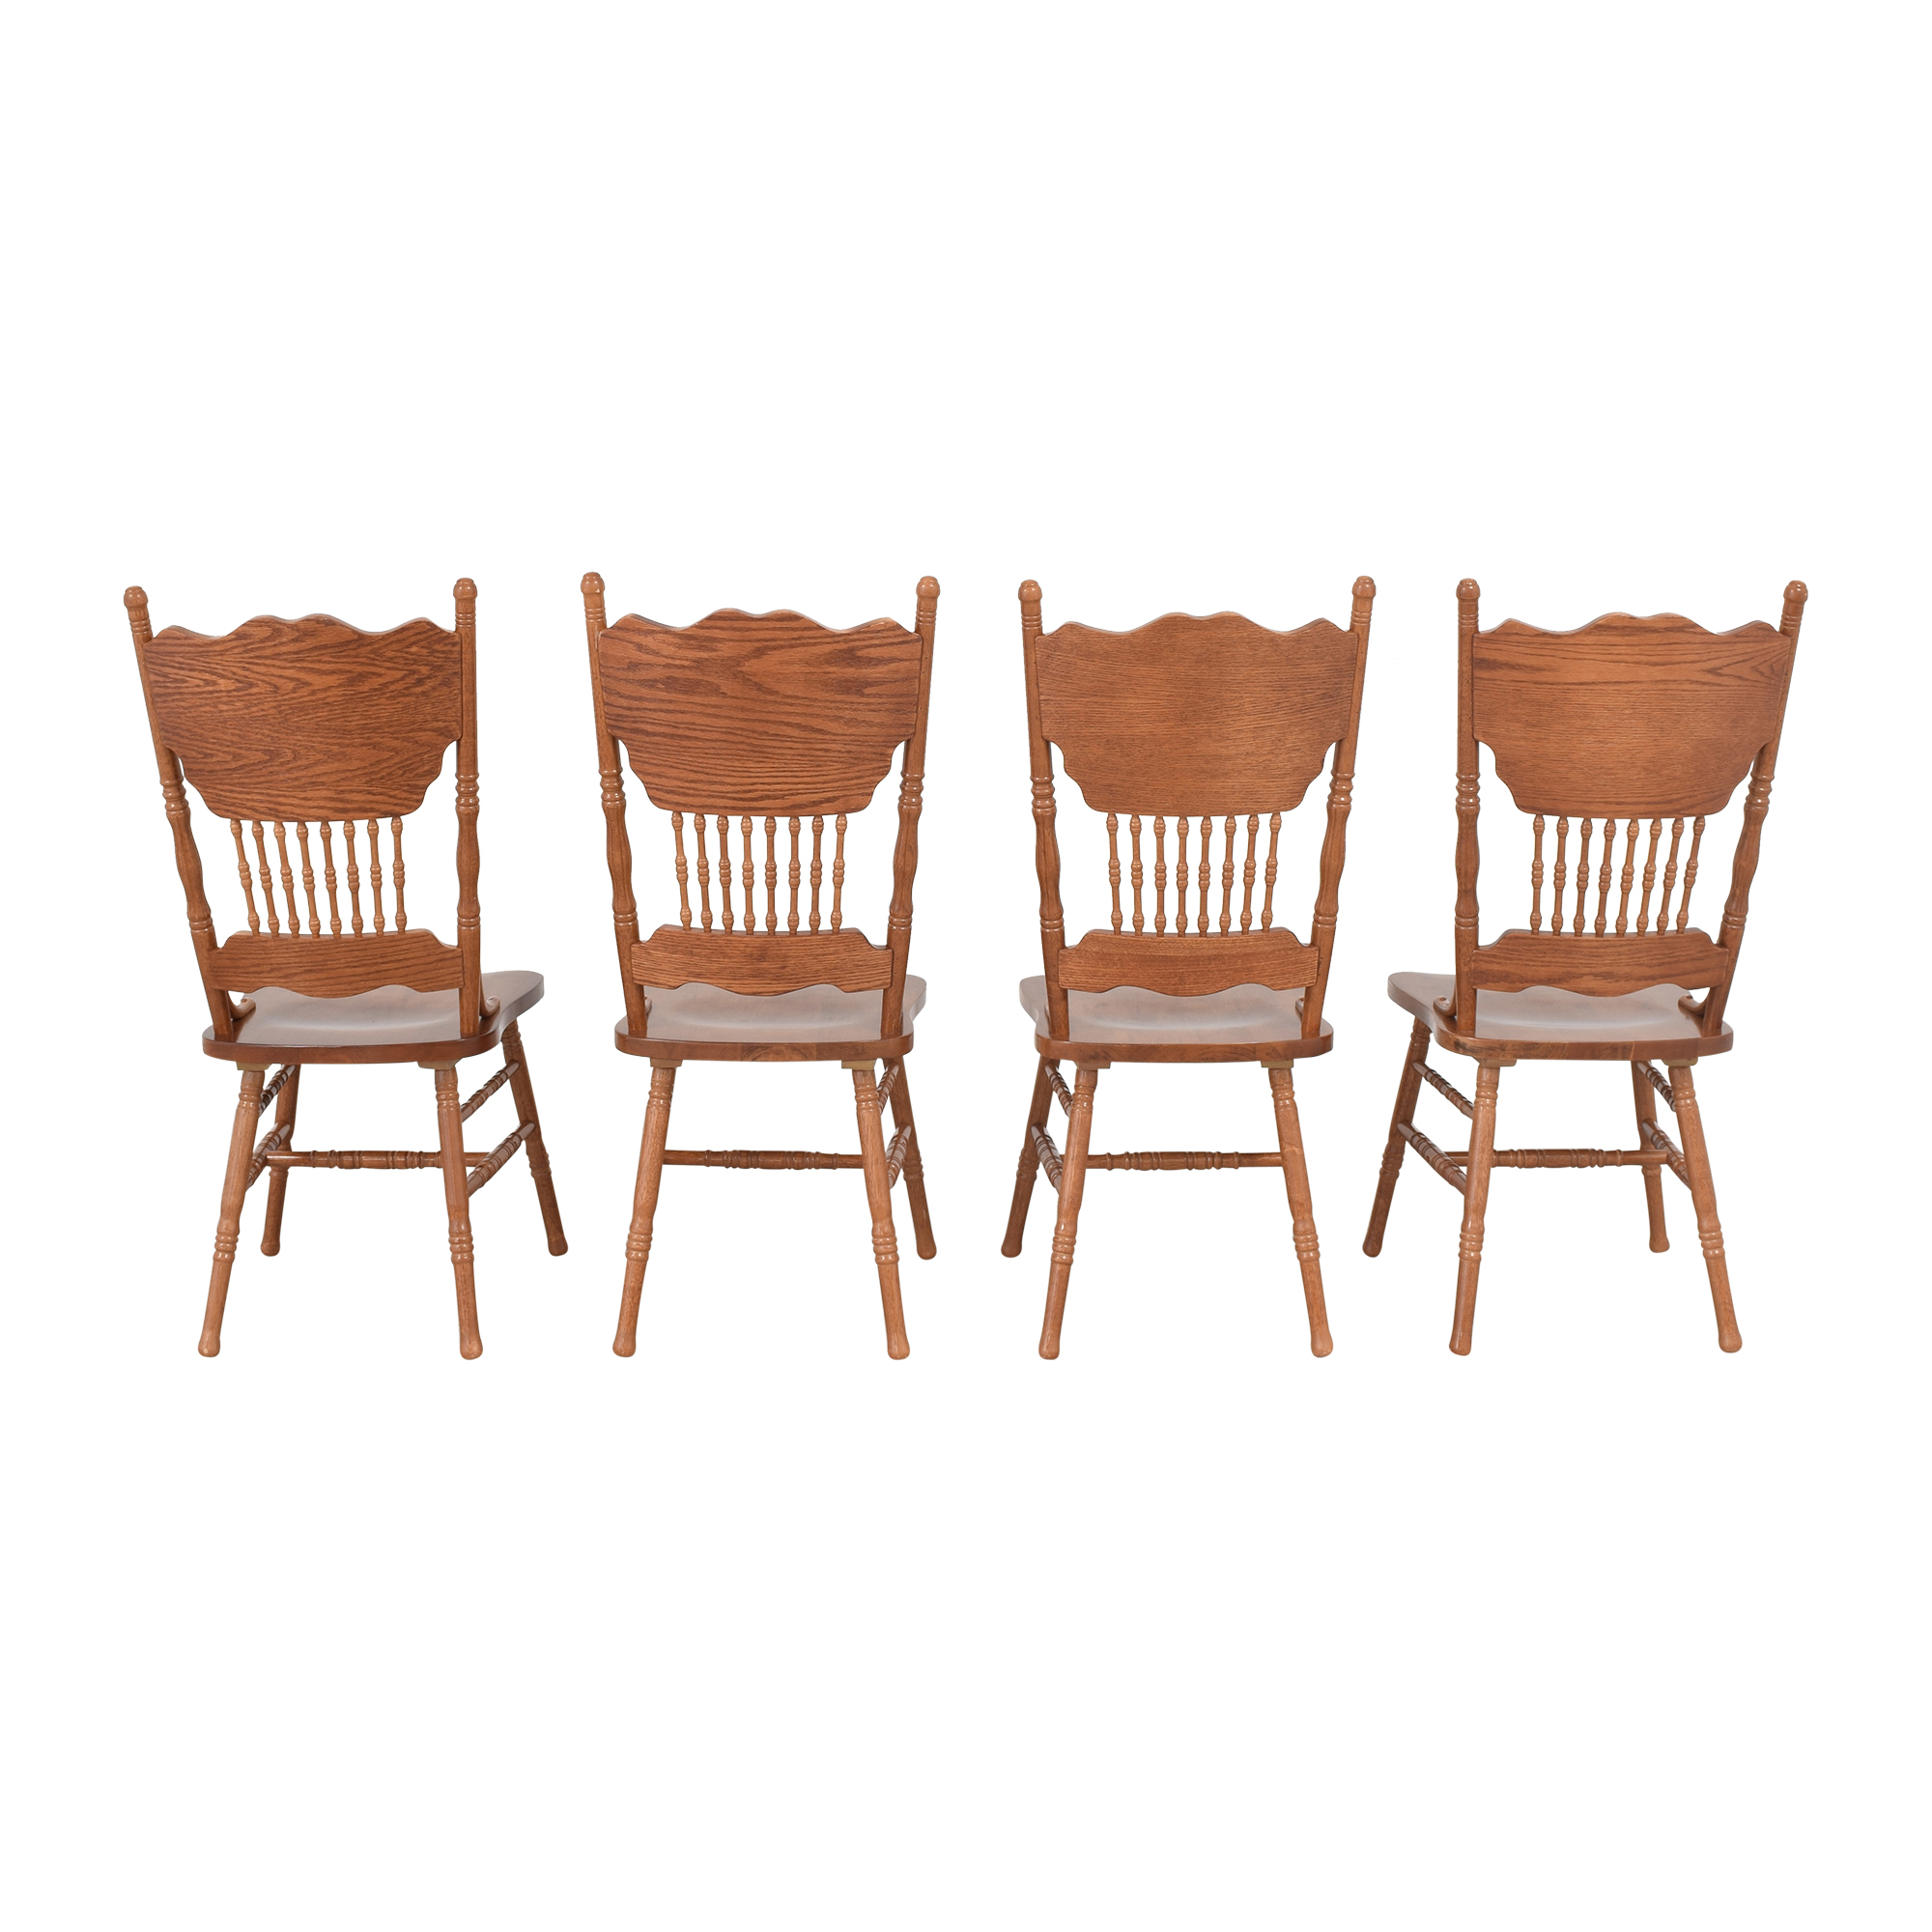 Poundex Poundex Pressback Dining Chairs Dining Chairs